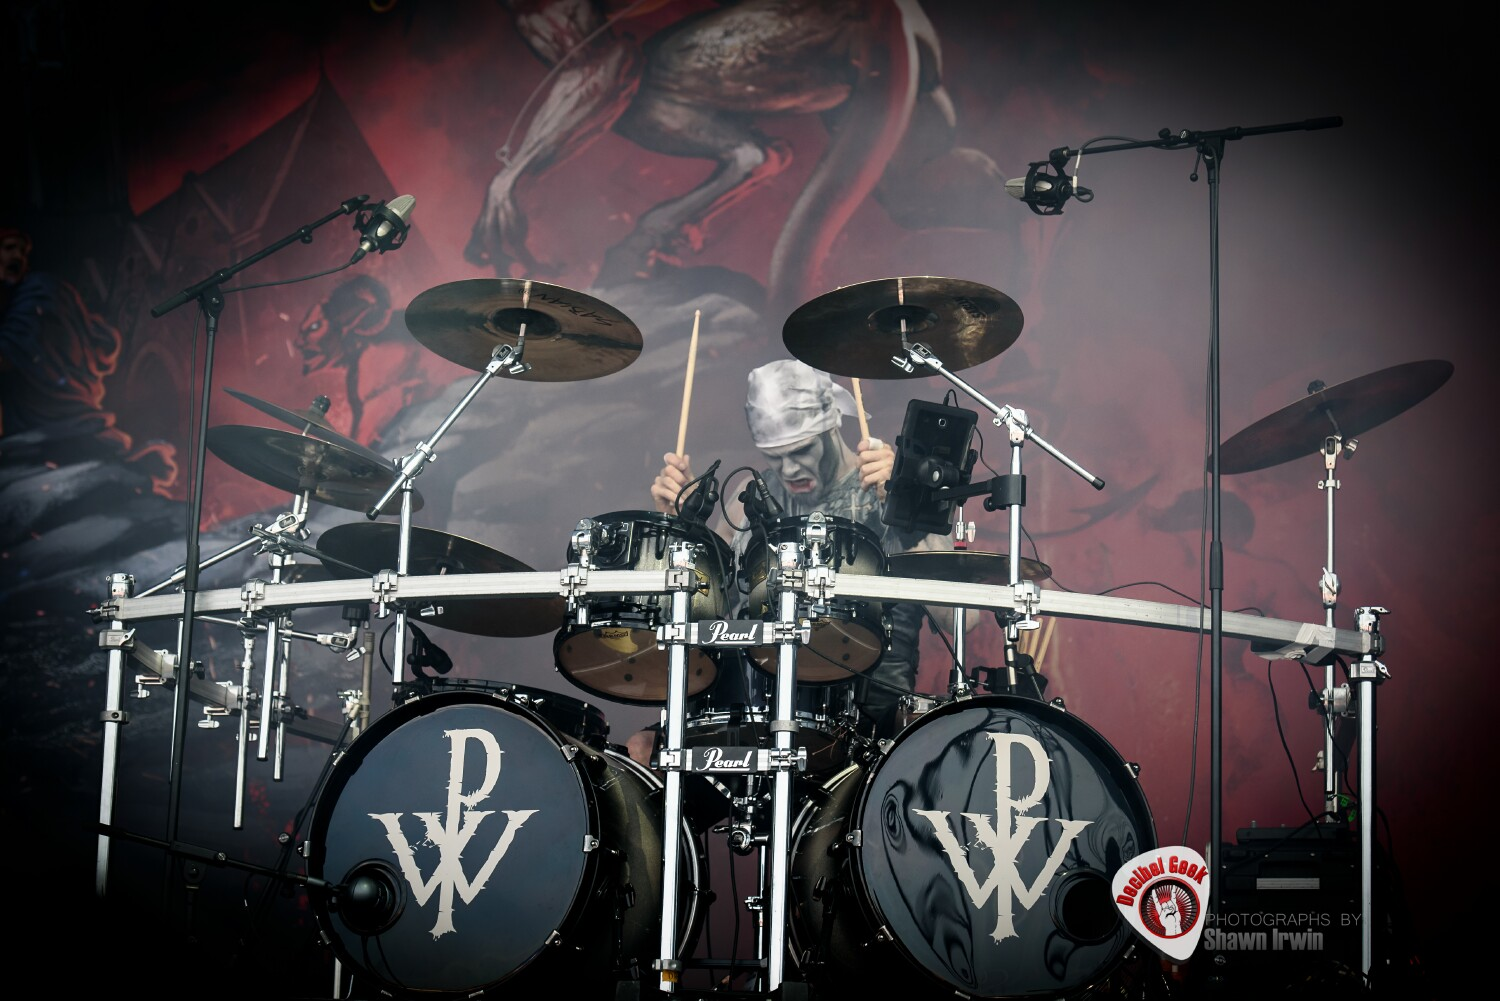 Powerwolf #14-SRF 2019-Shawn Irwin